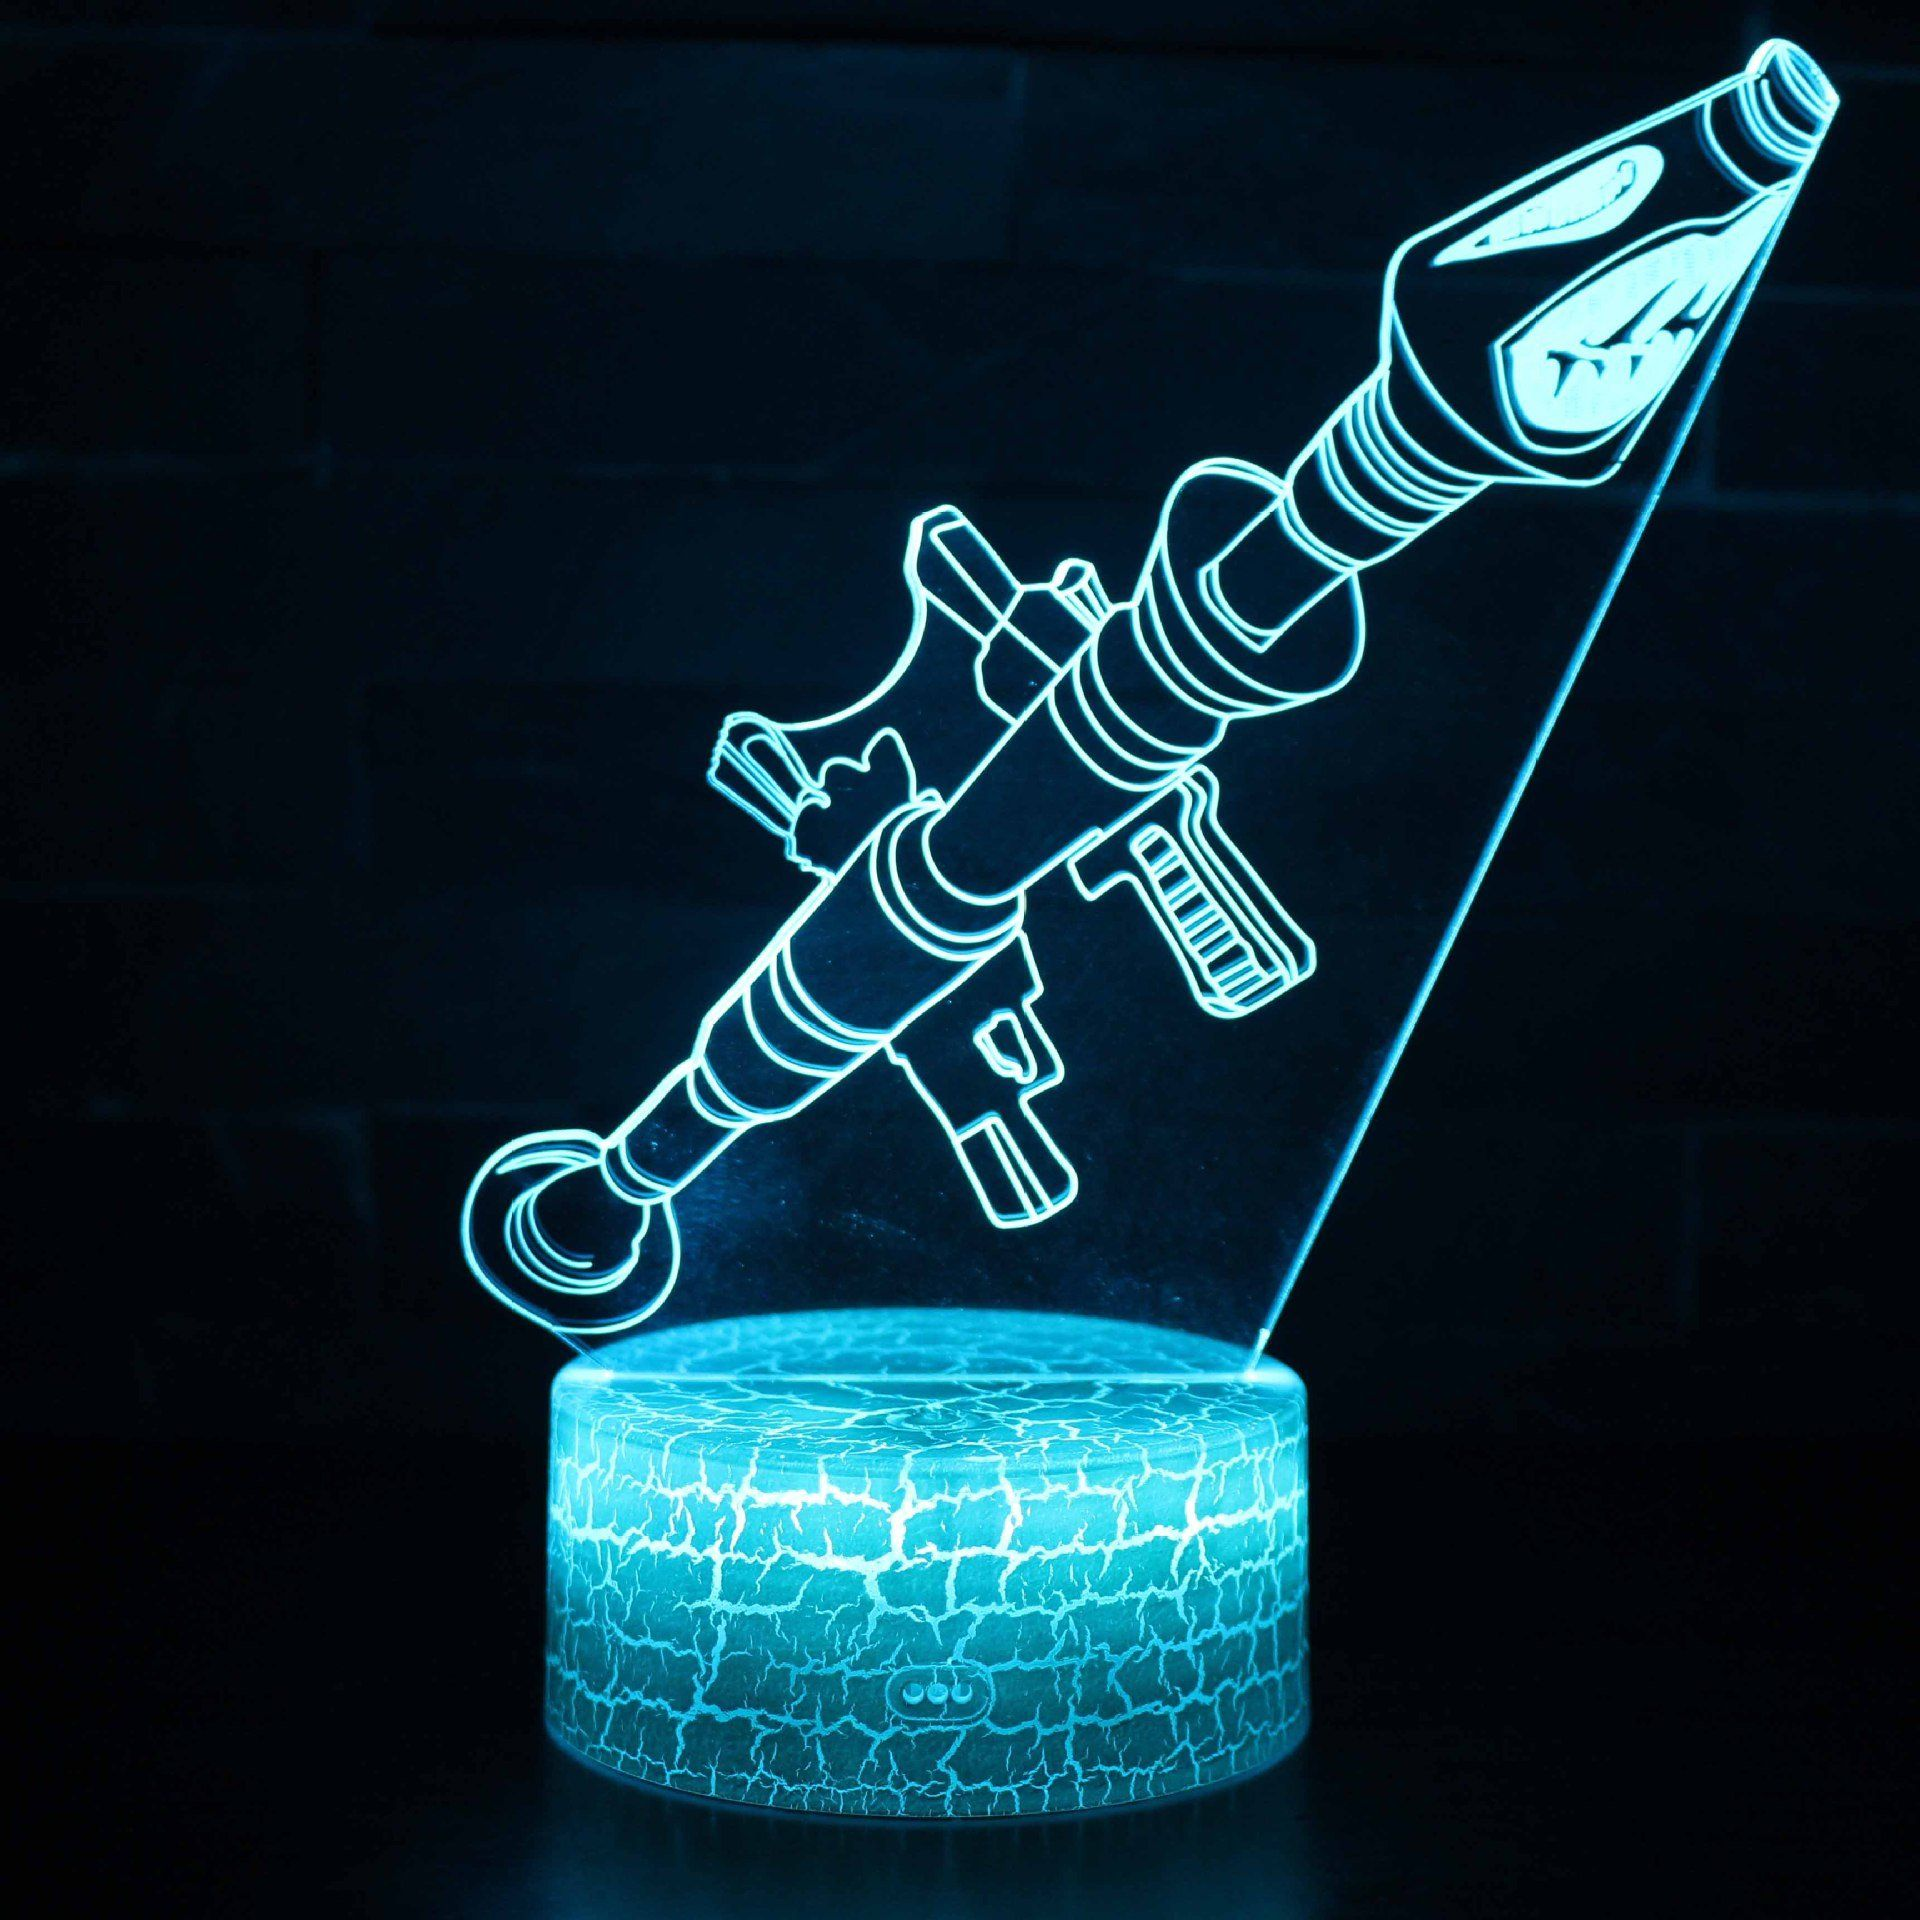 Fortnite Waffe 3d Illusion Lampe Tischlampe Nachtlicht Stimmnungslicht Fur Kinder Geschenk Mood Lamps 3d Led Night Light Led Night Light